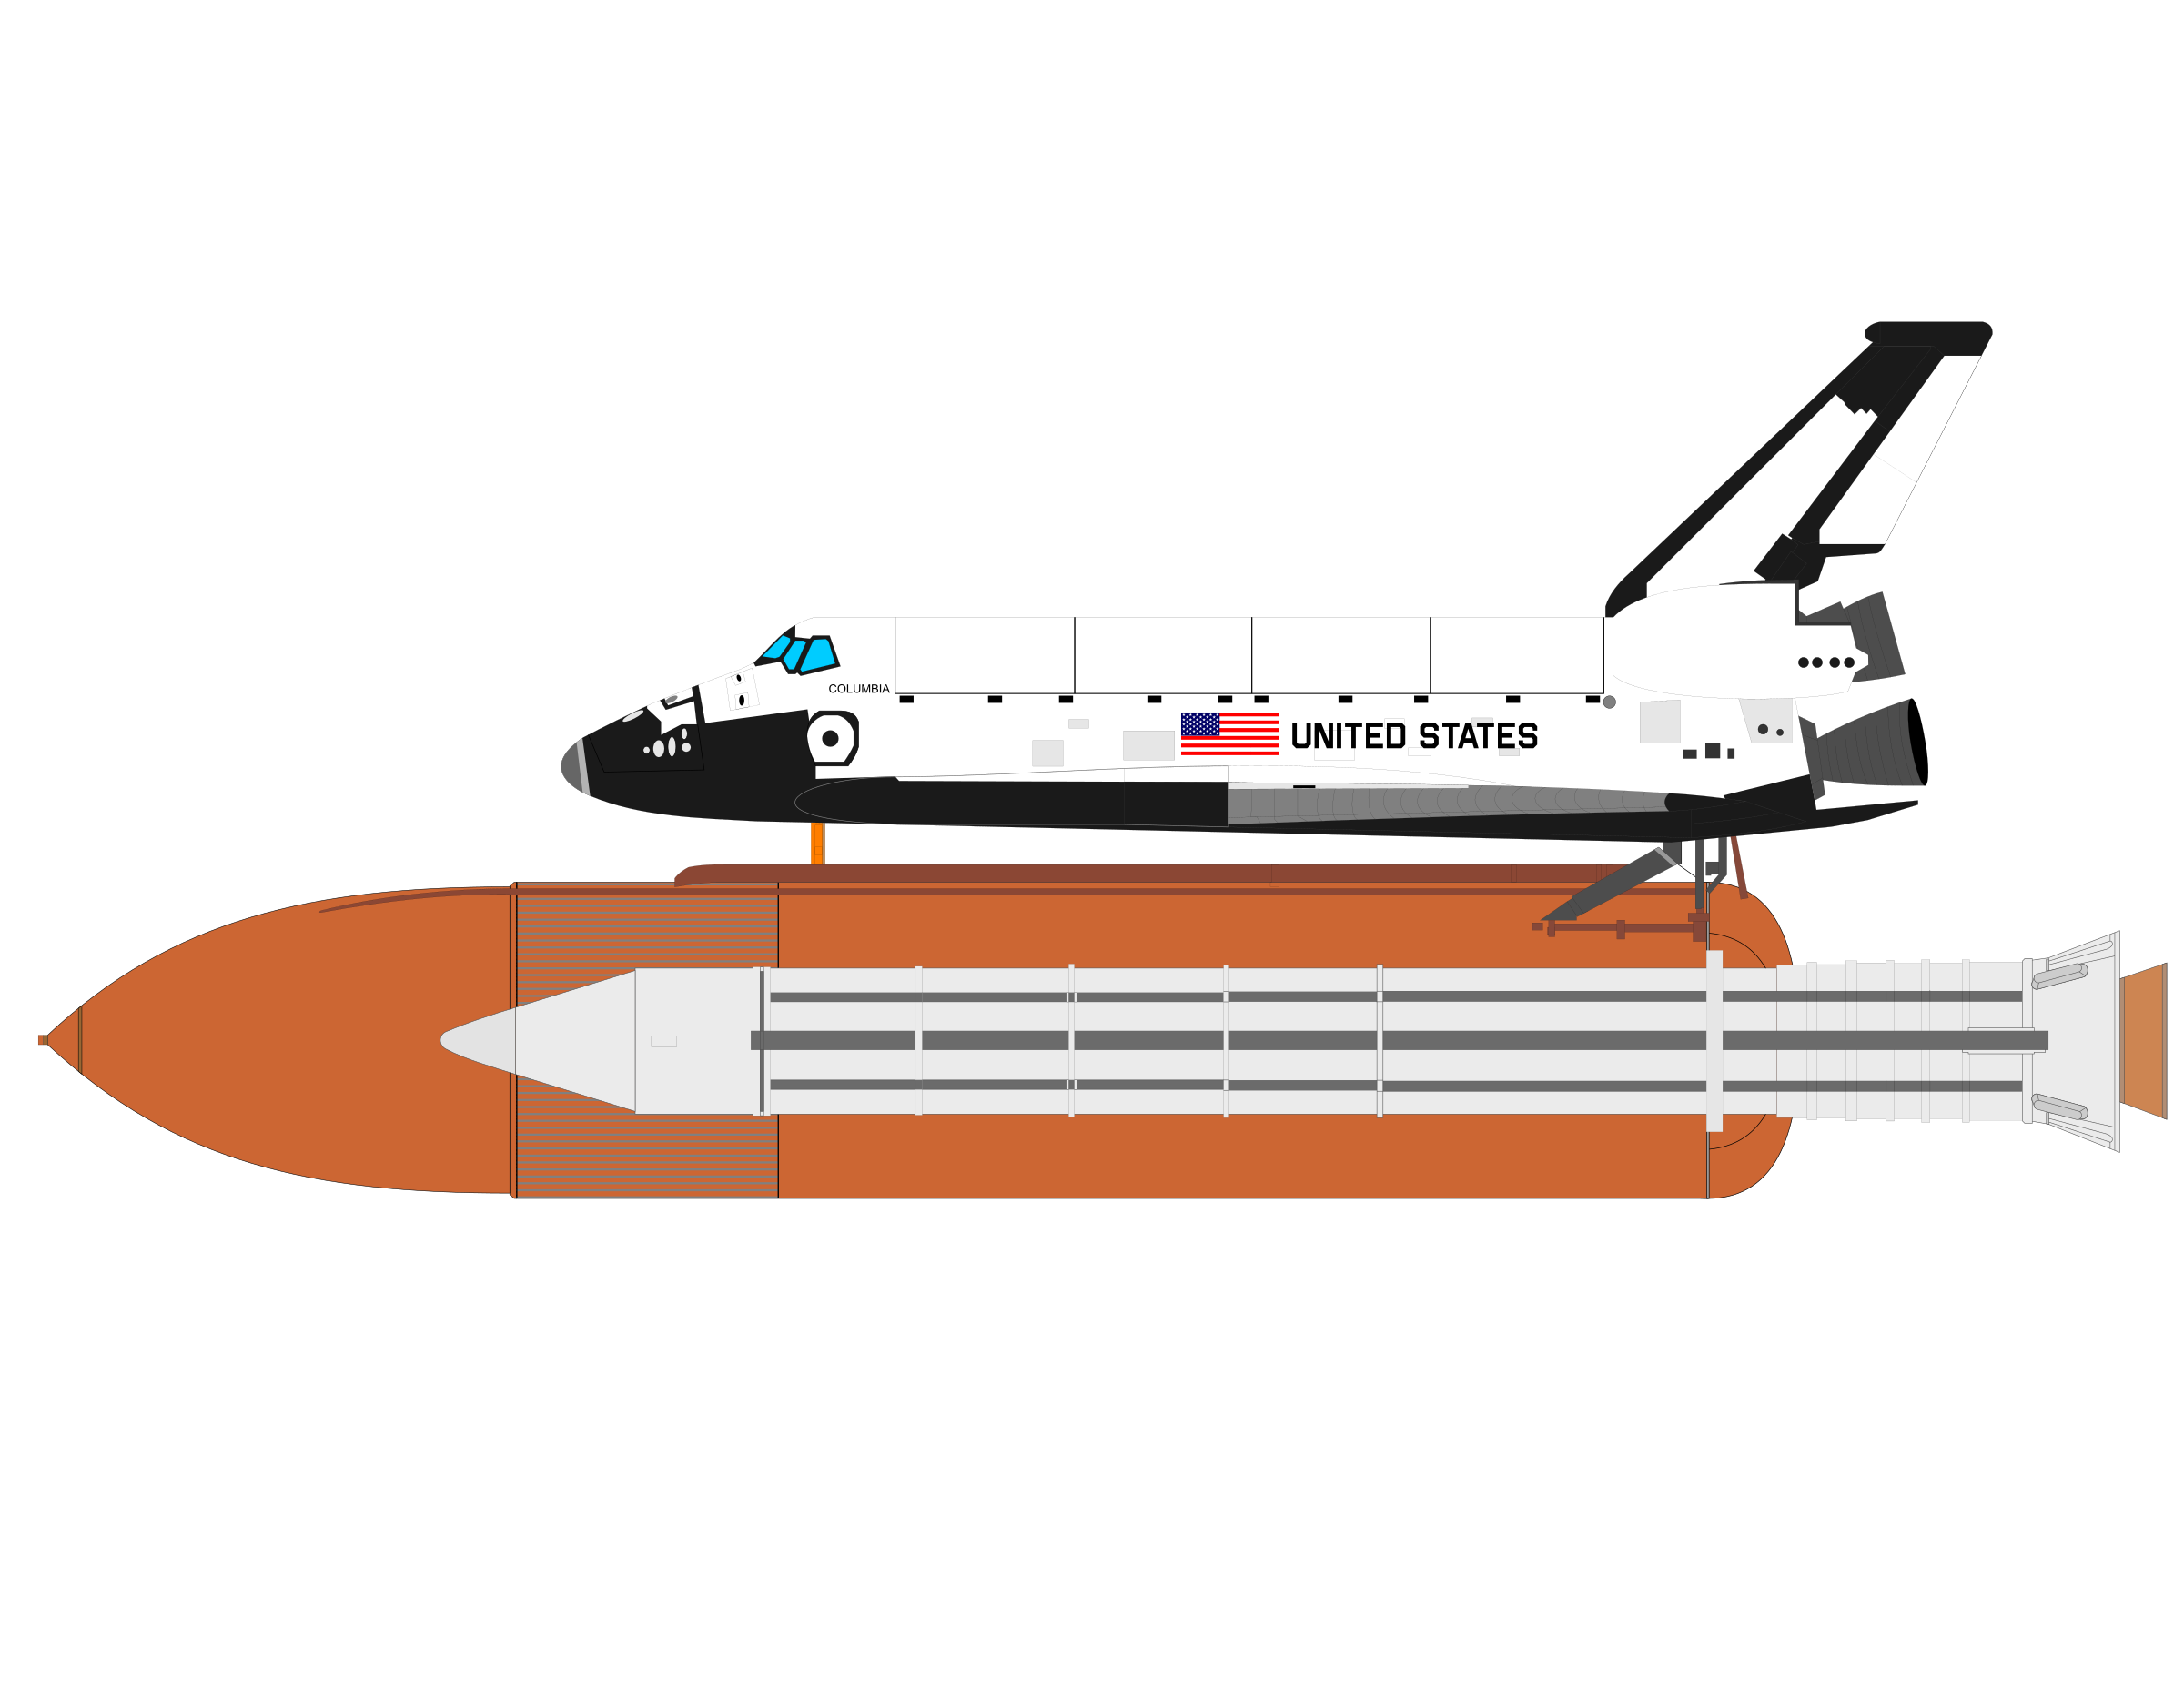 SPACE SHUTTLE 2 by charner1963